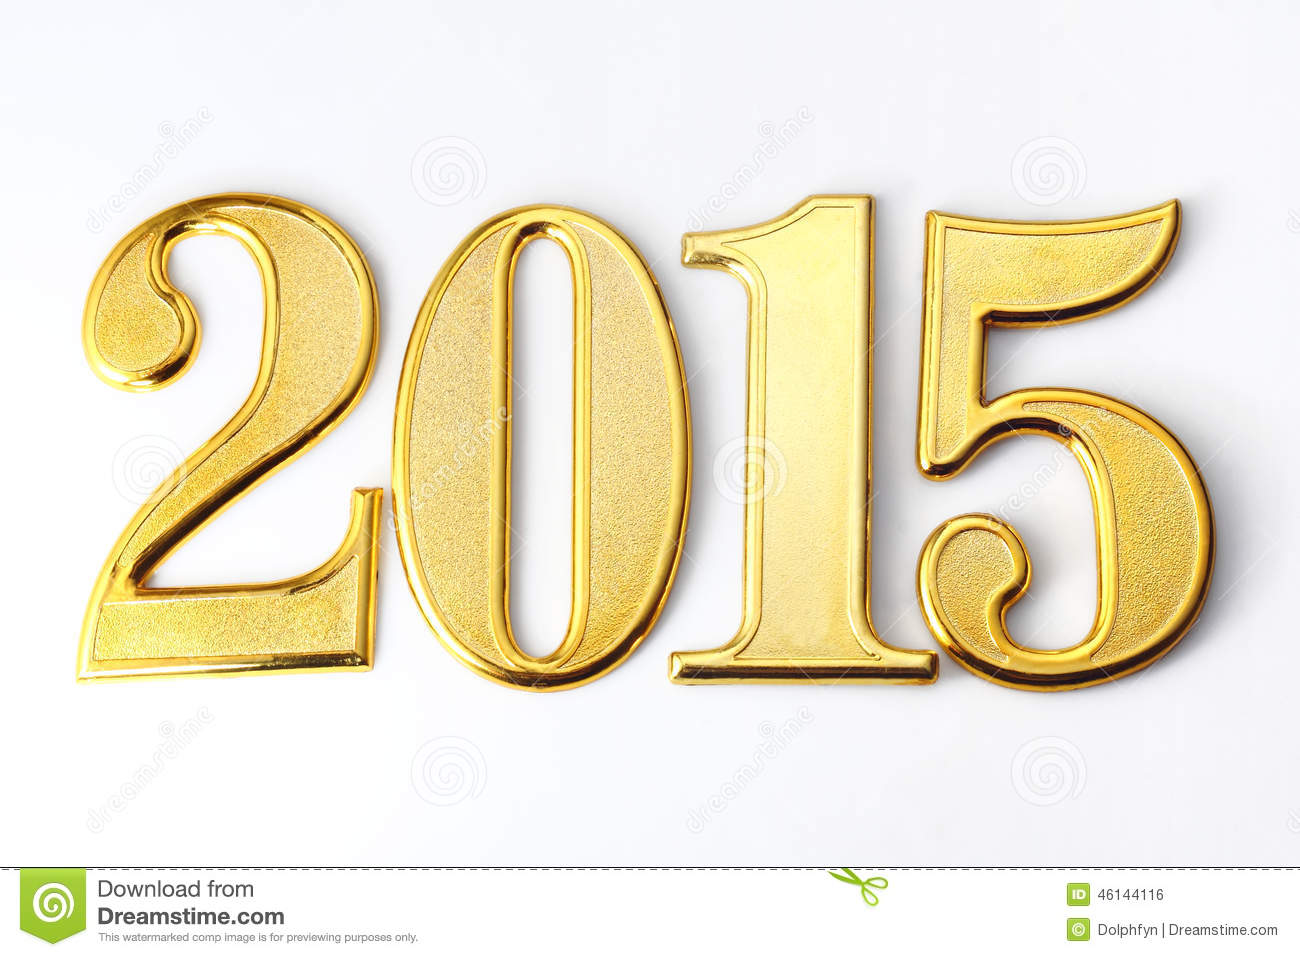 2015 gold numbers text on white background.